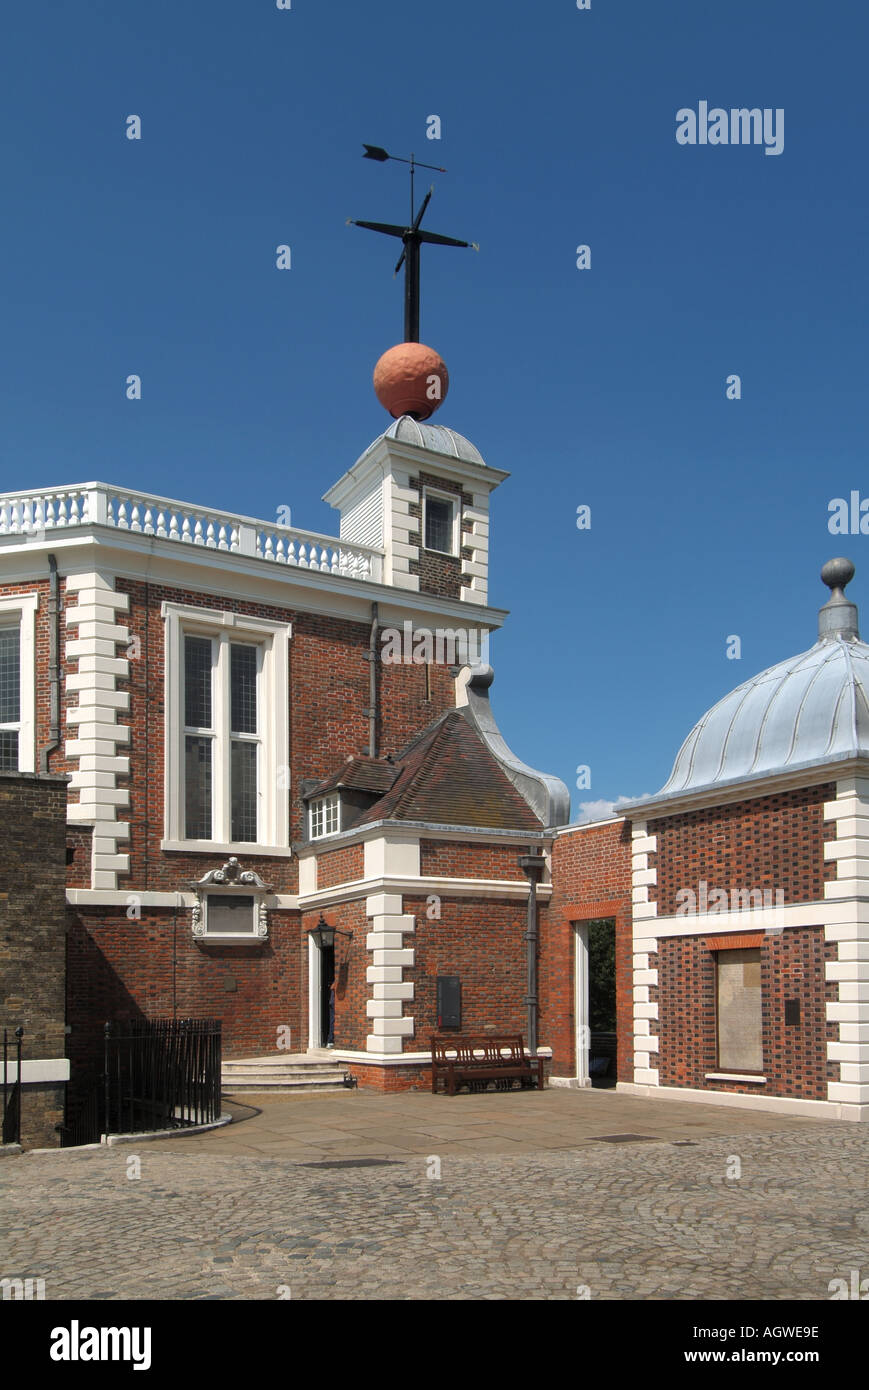 Greenwich Observatory Time Ball above Flamstead House used to provide signal to ships to check marine chronometers Greenwich Park London England UK - Stock Image